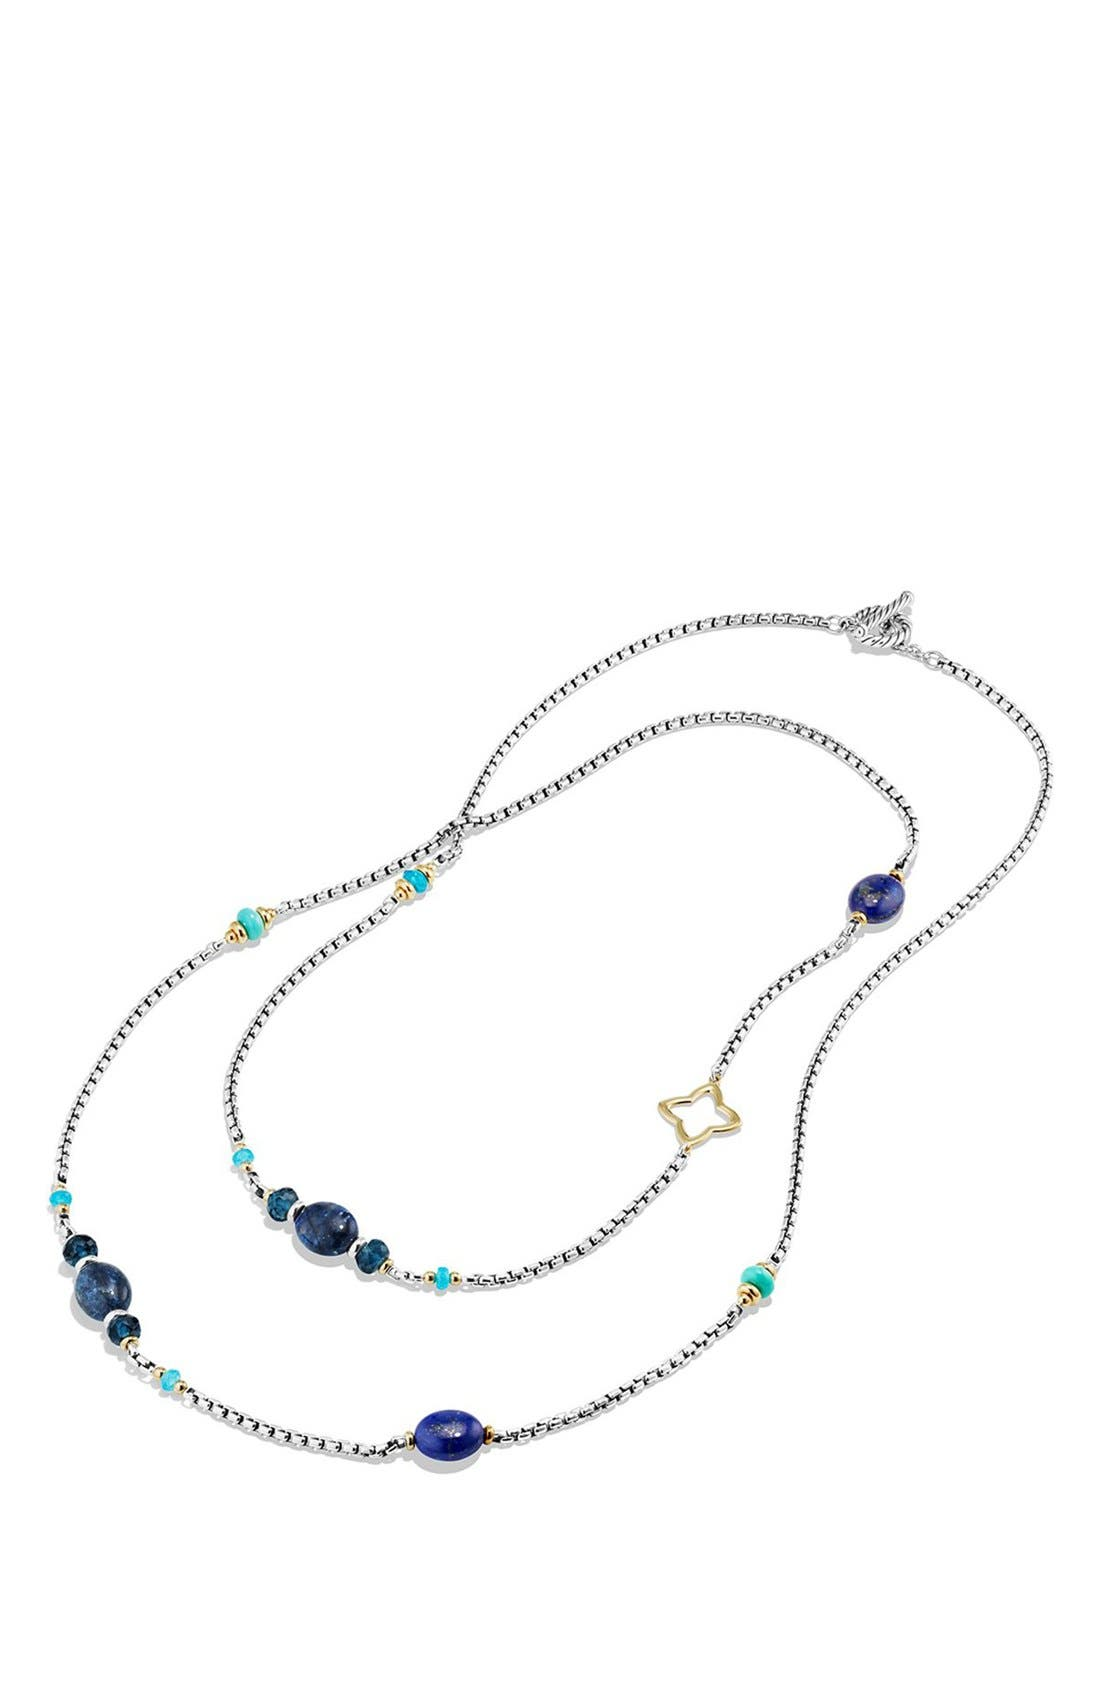 'Bead and Chain' Necklace,                             Alternate thumbnail 2, color,                             SILVER/ GOLD/ TURQUOISE